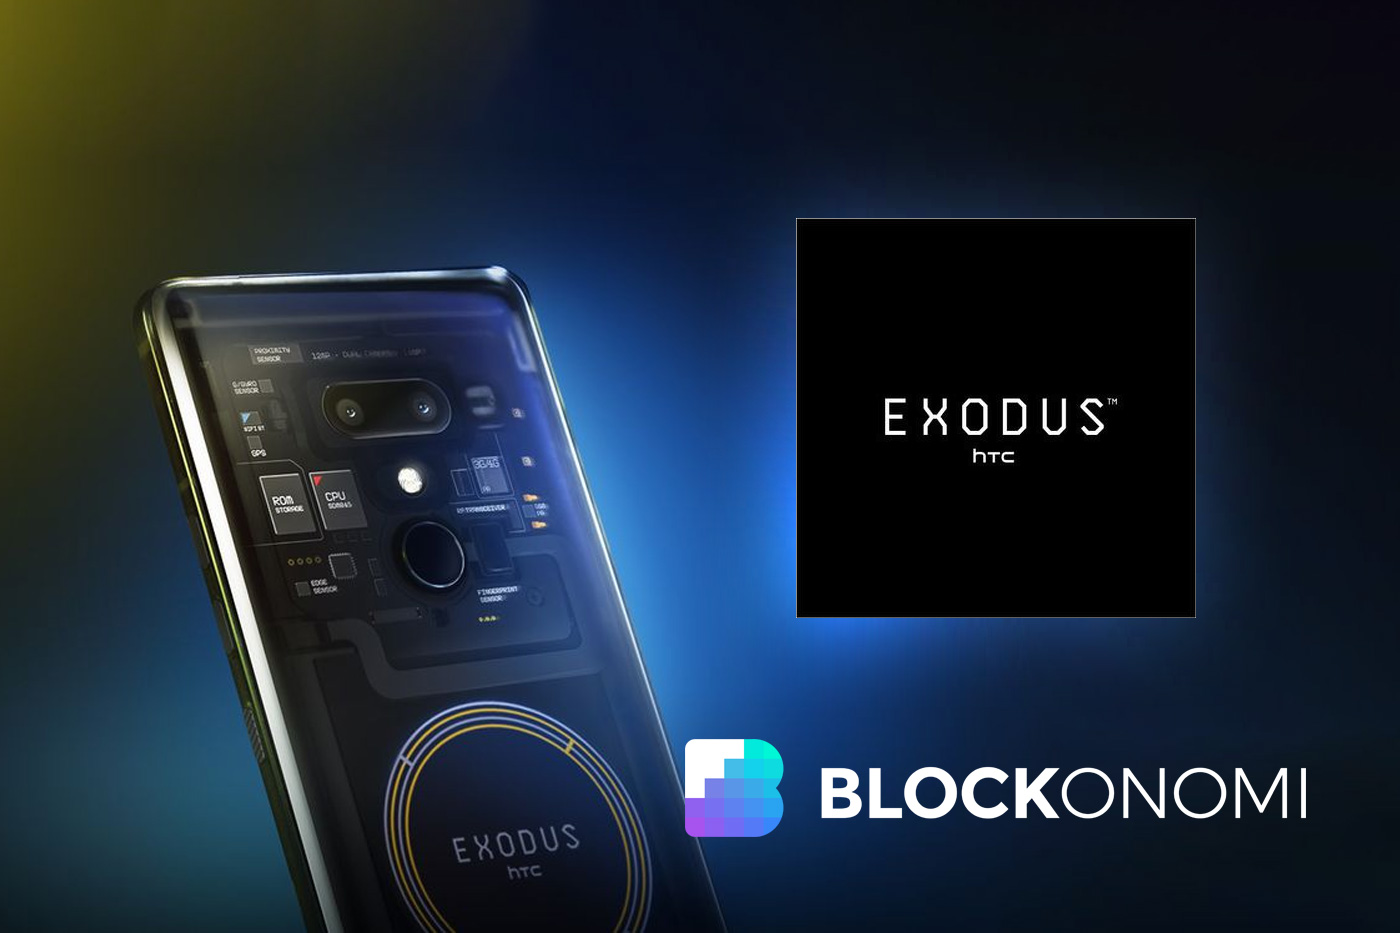 The announcement of the new digital currency phone HTC Exodus 1